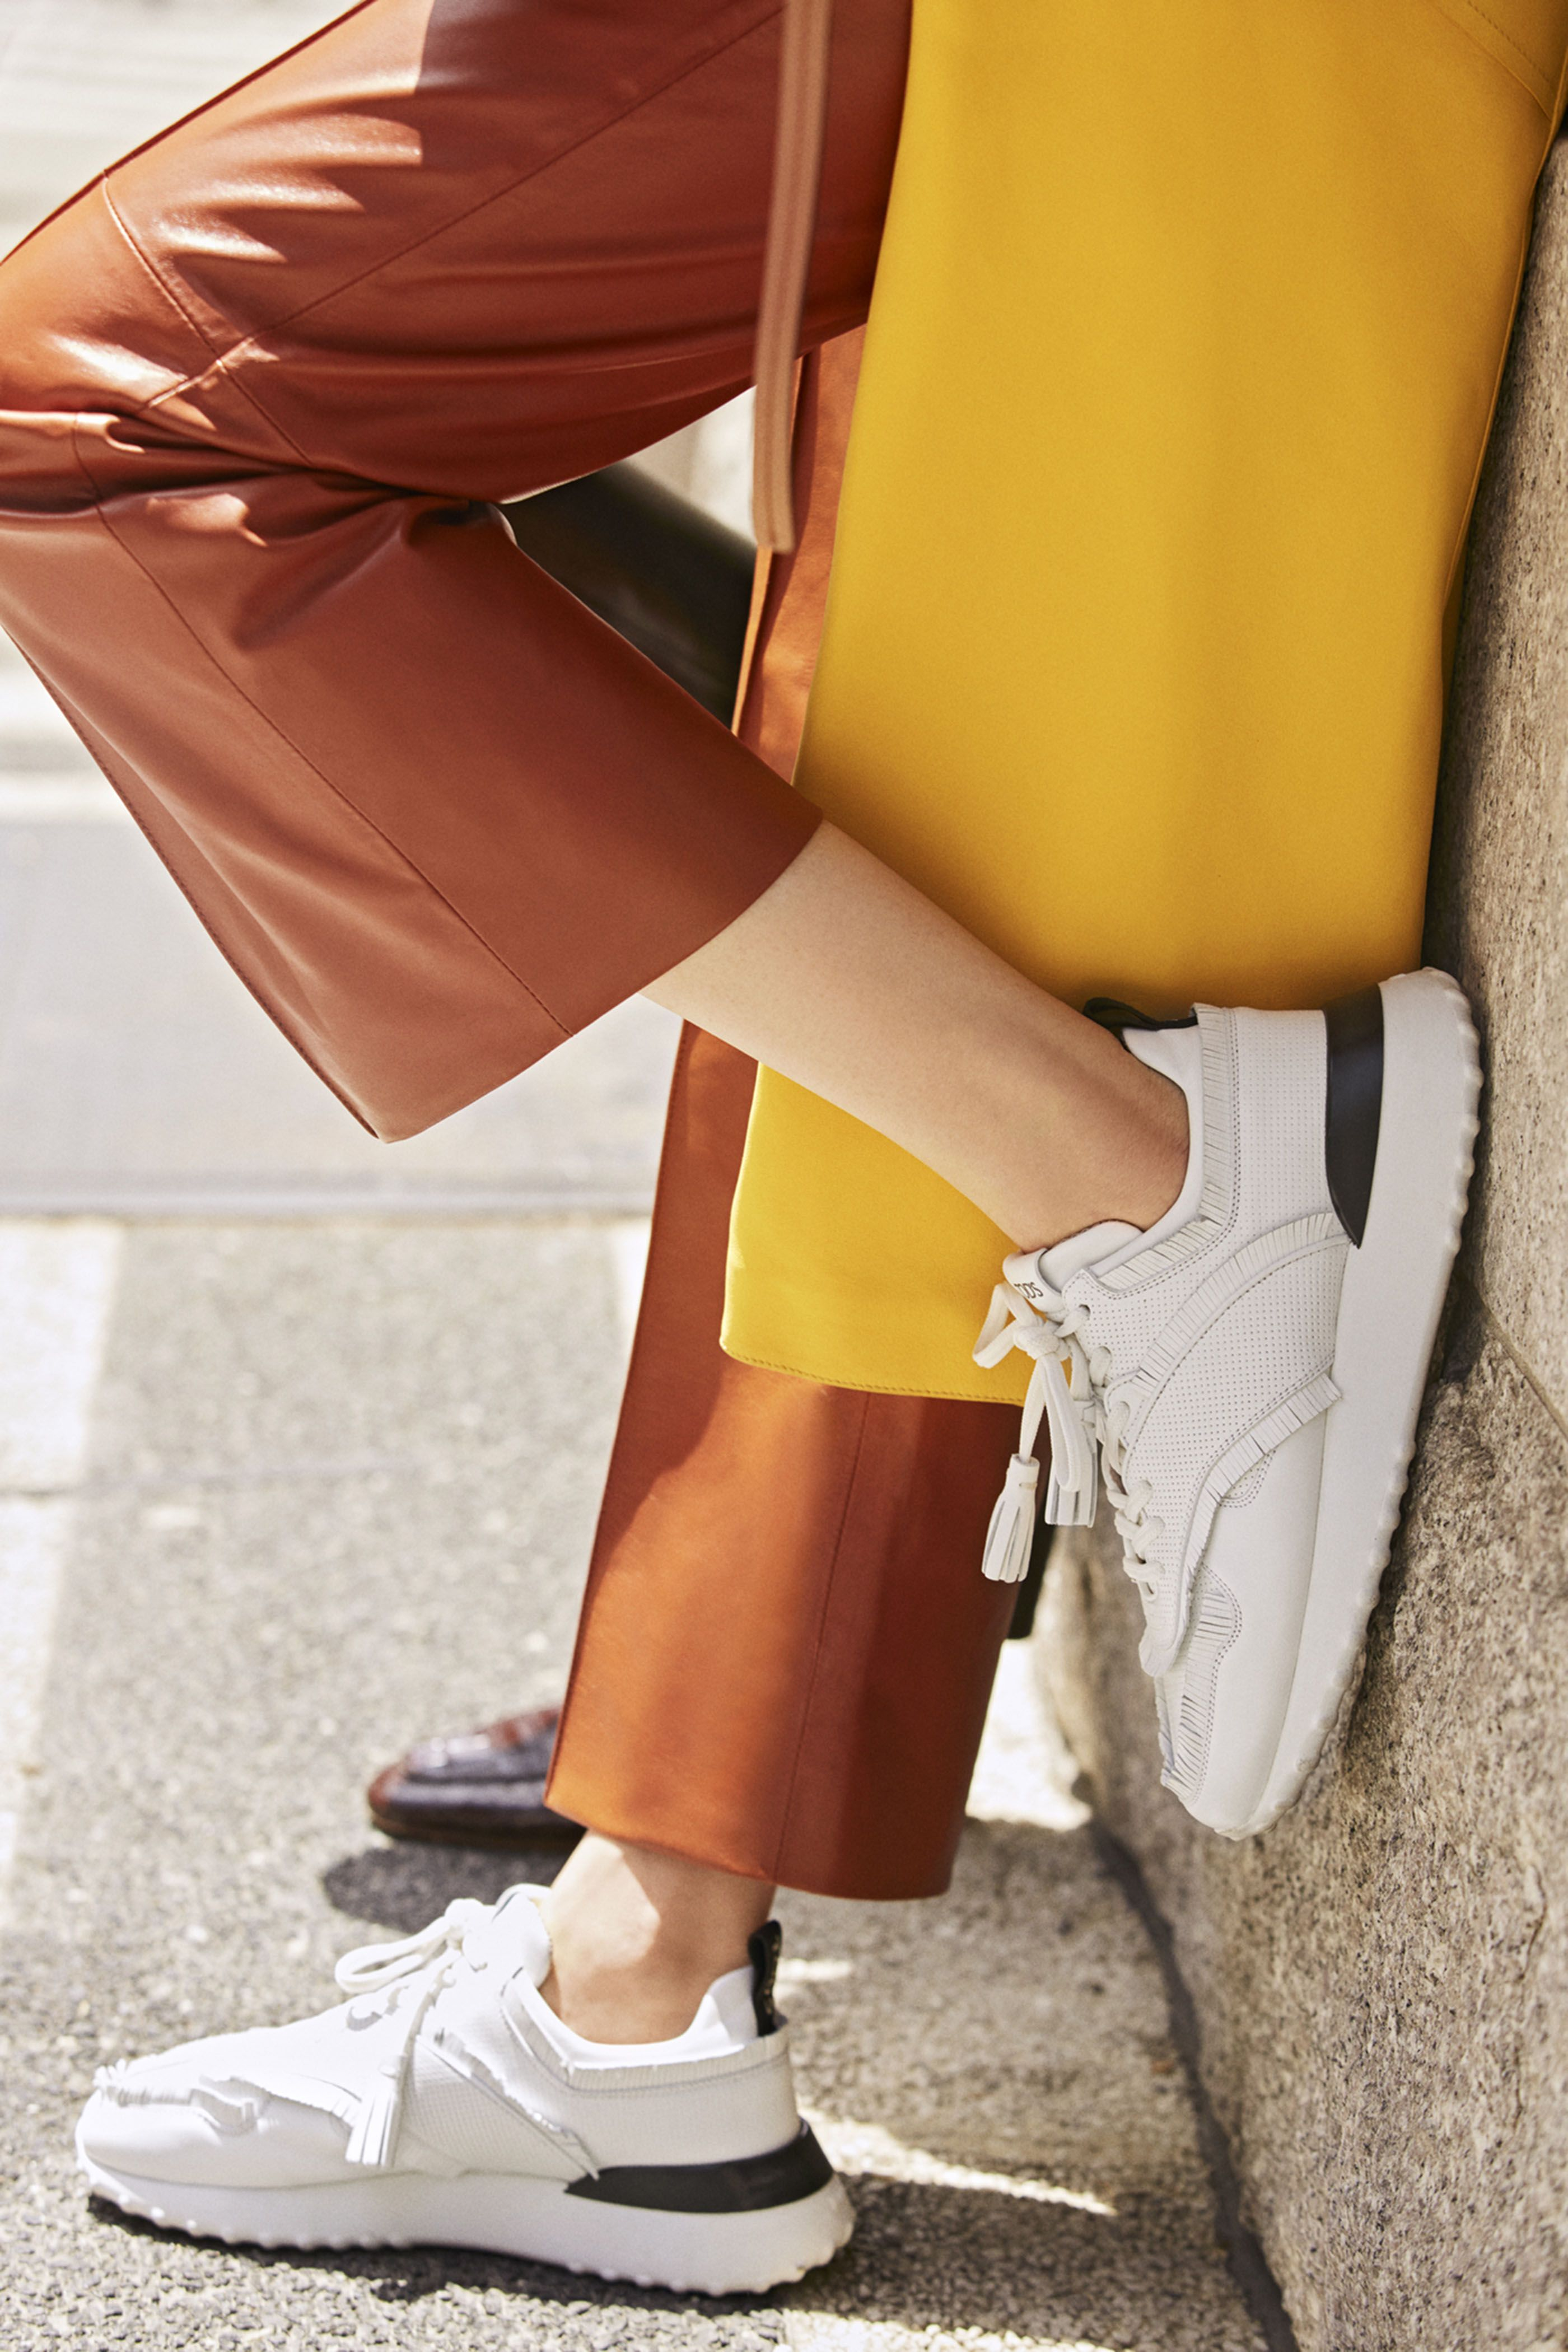 7c496cc5bc Mixing materials and colors and enjoying special moments: #CiaoByTods is a  tale of effortless spontaneity, discover more at tods.com #Tods  #ItalianStyle # ...